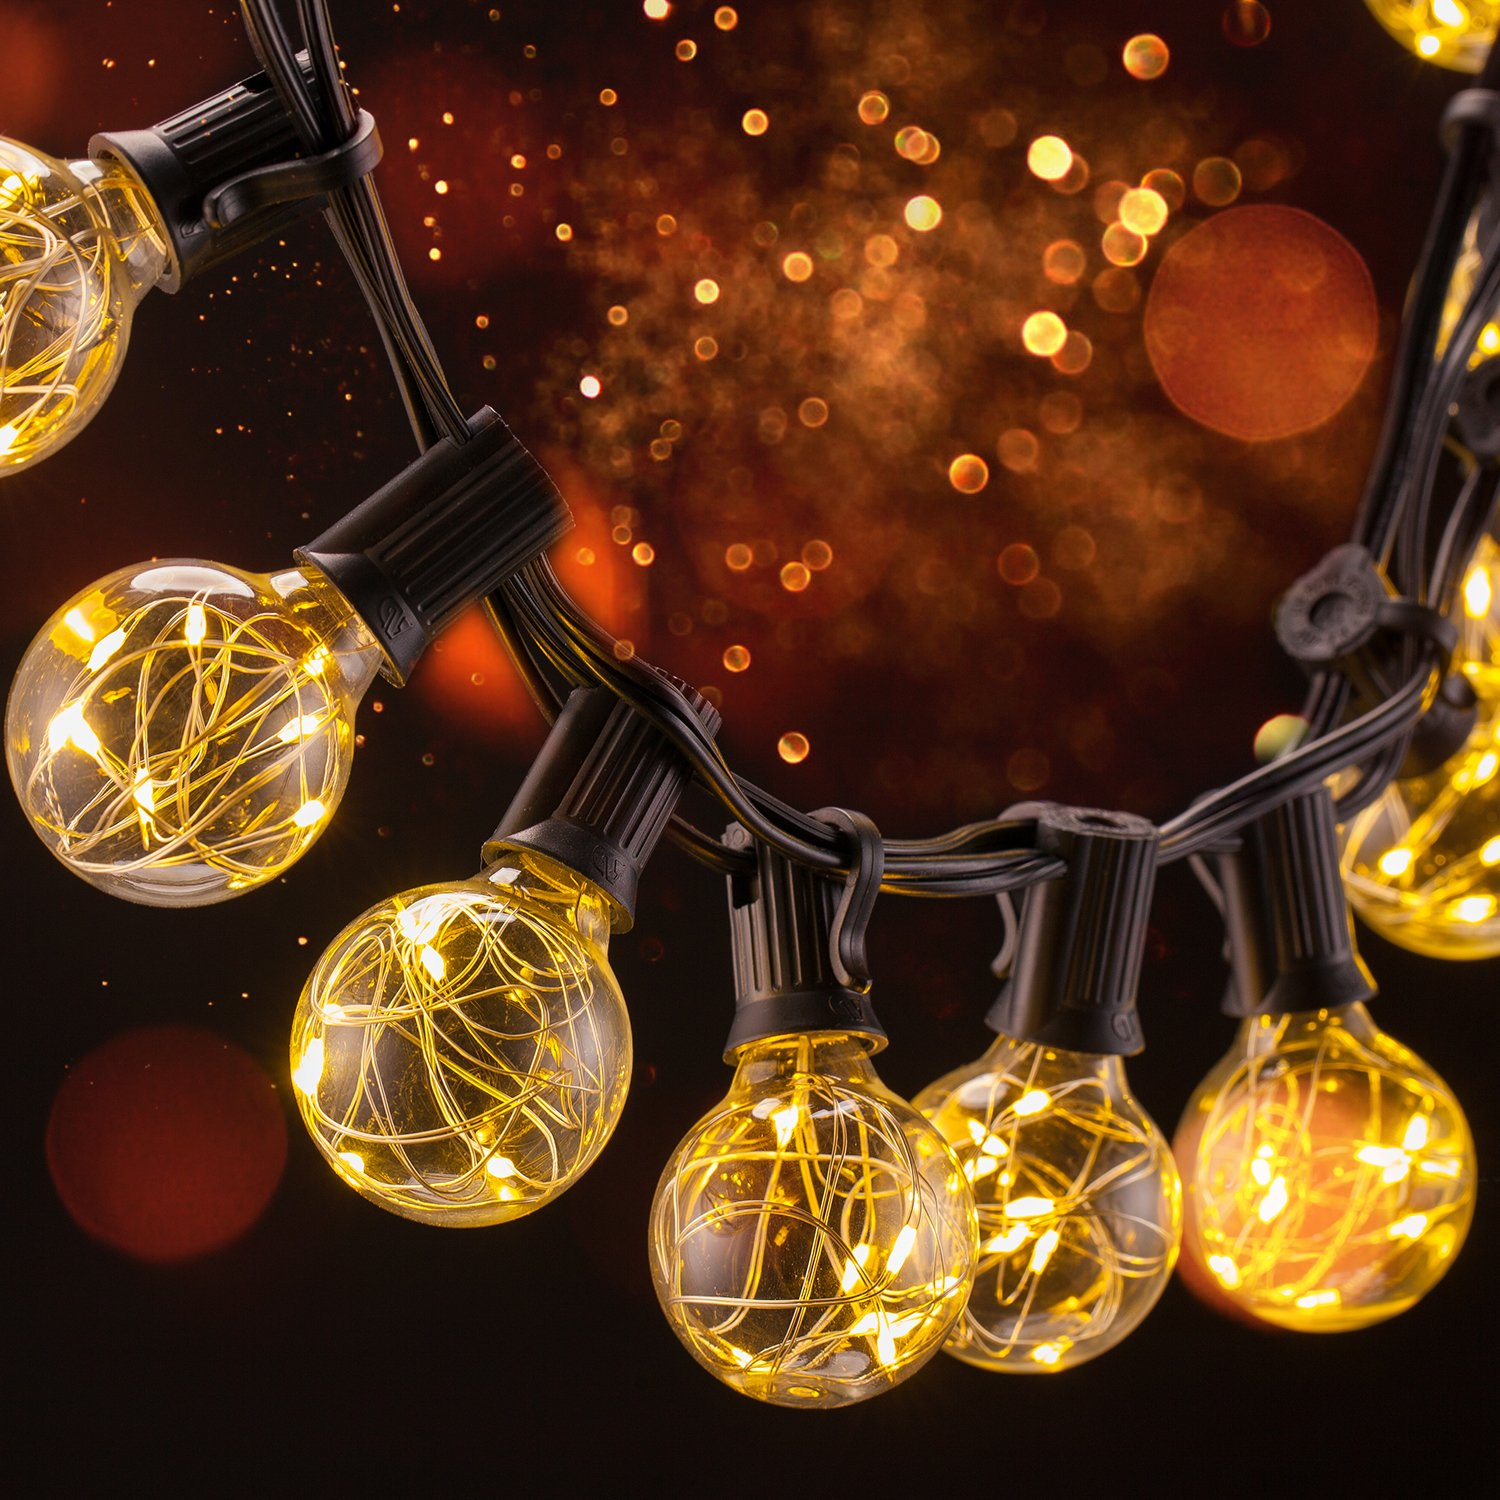 Apsung String Lights, 25 LED G40 Bulbs, UL listed Backyard Patio Lights, Hanging Indoor / Outdoor String Light for Patios, Parties, Weddings, Gazebos, Pergolas & More - Warm White